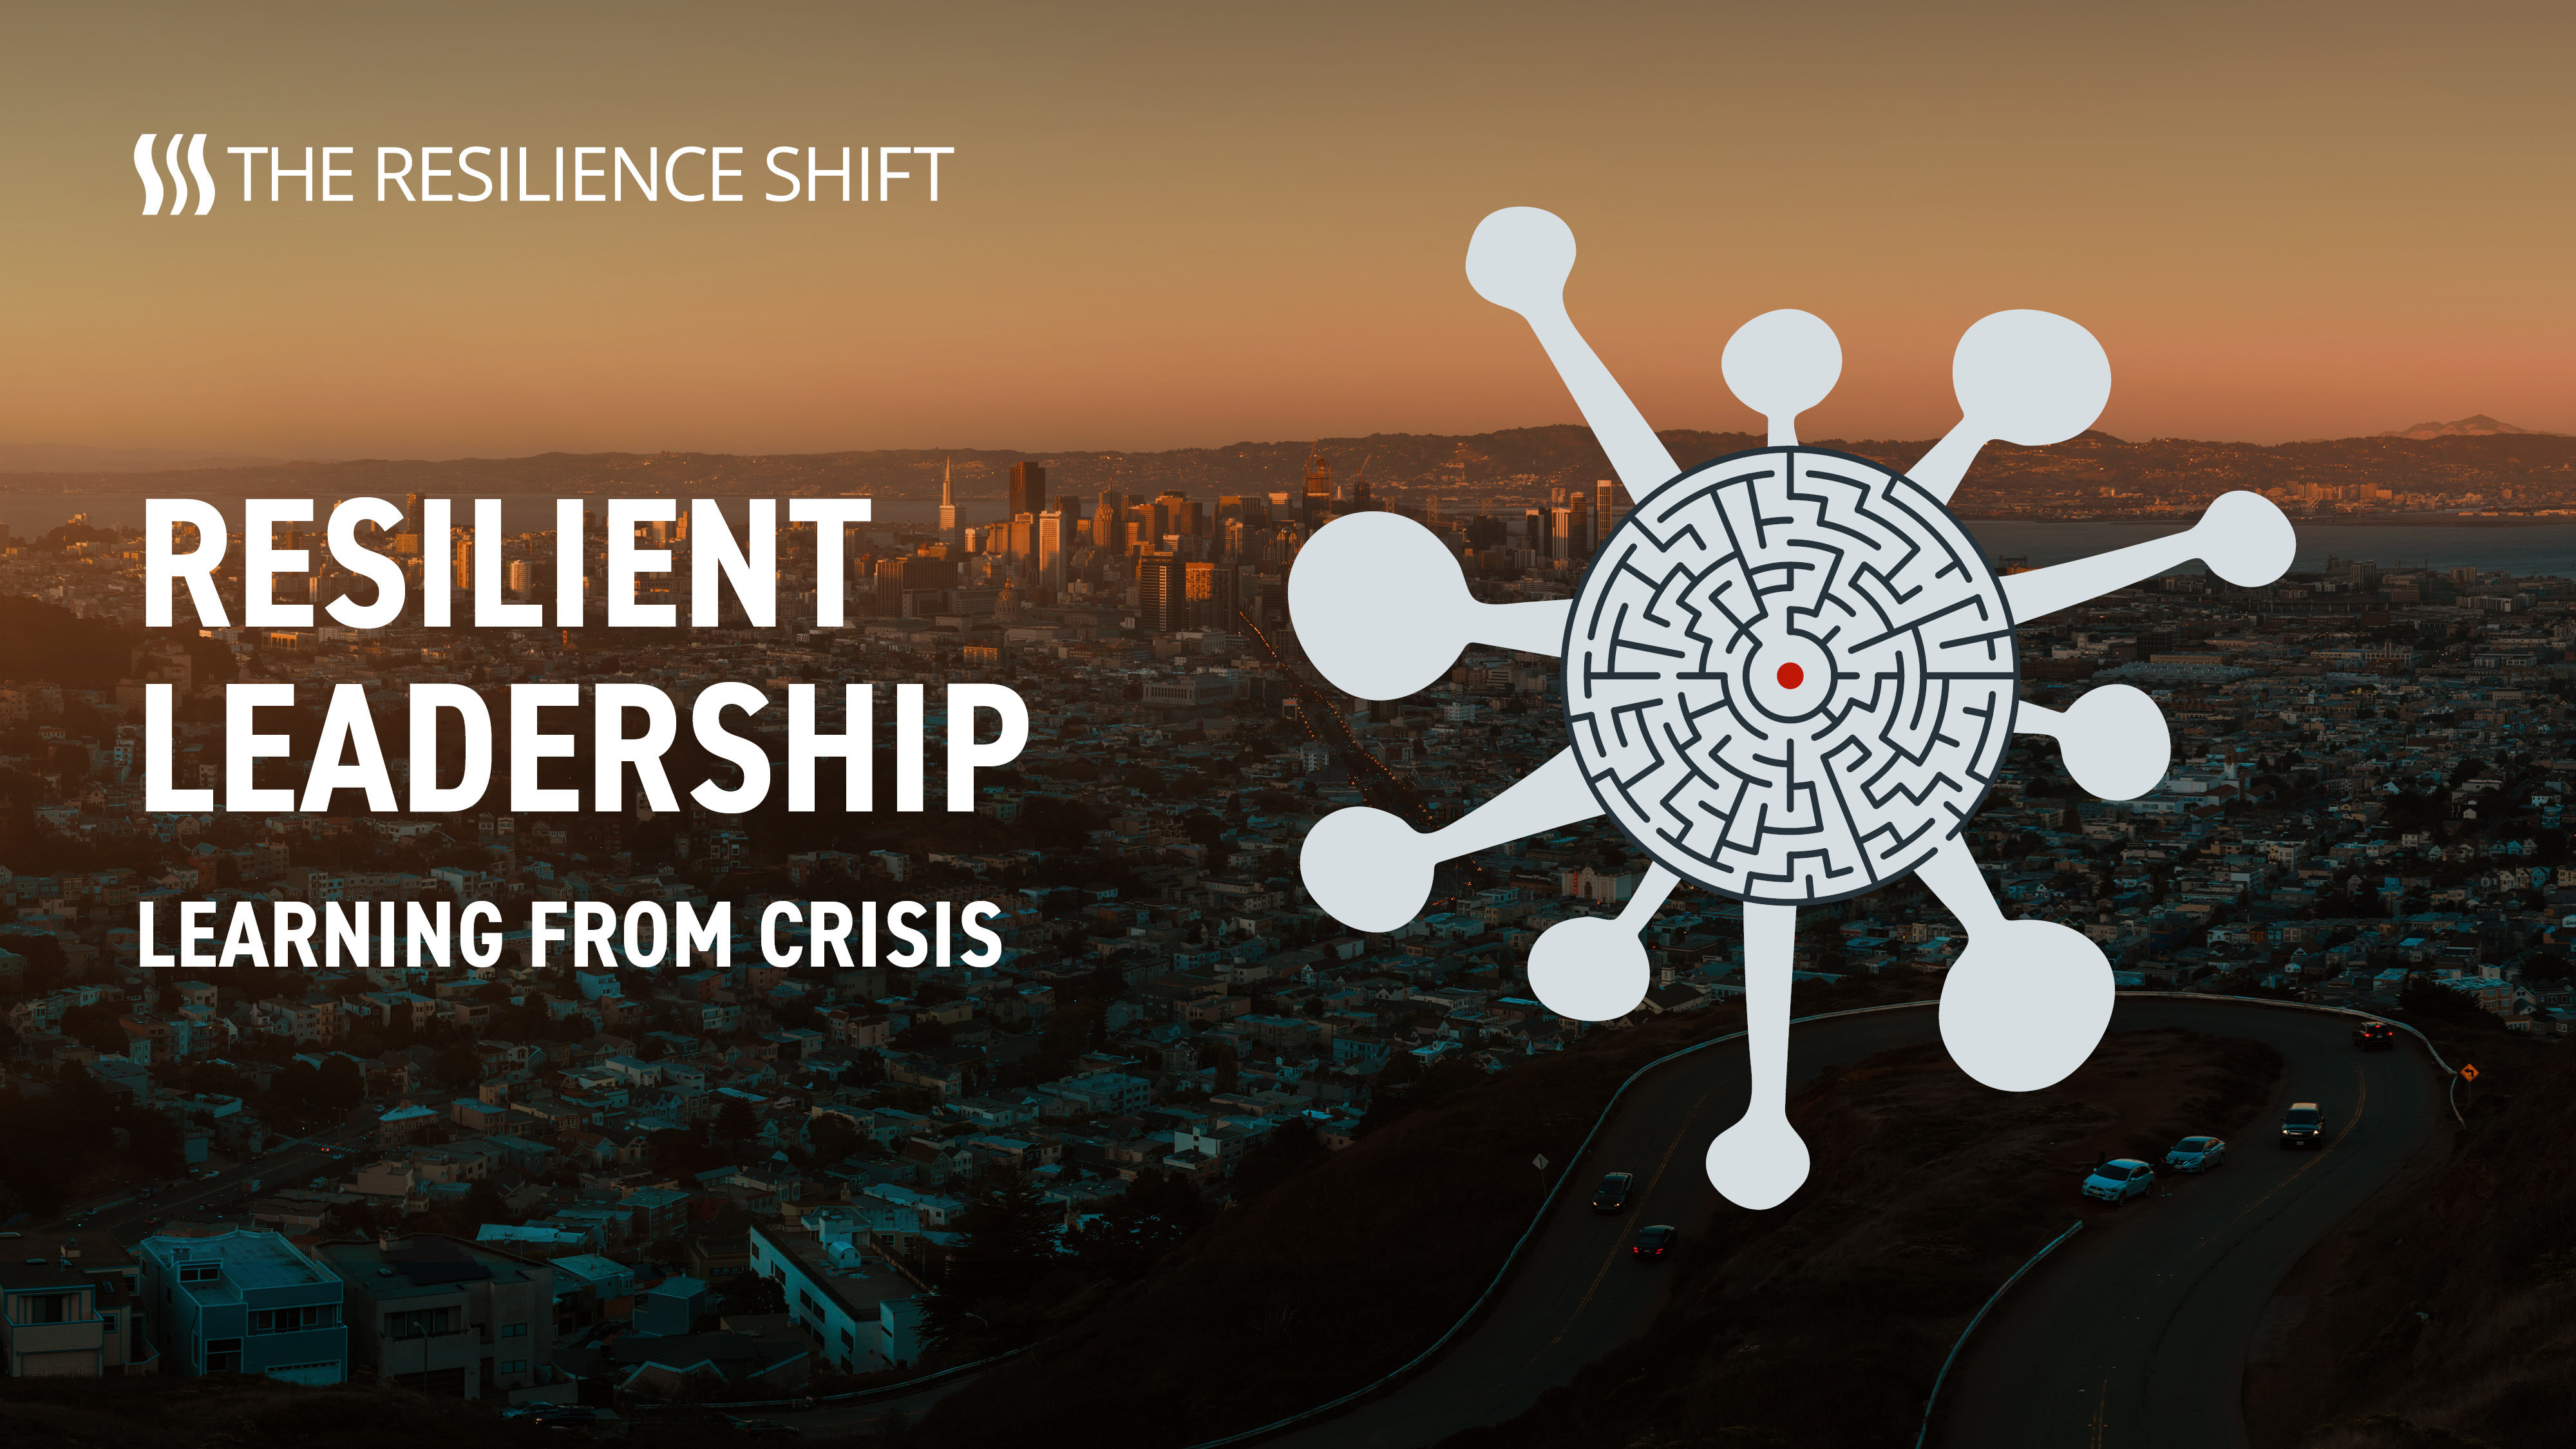 The Resilient Leadership initiative aims to understand decision-makers' real-time response to crisis